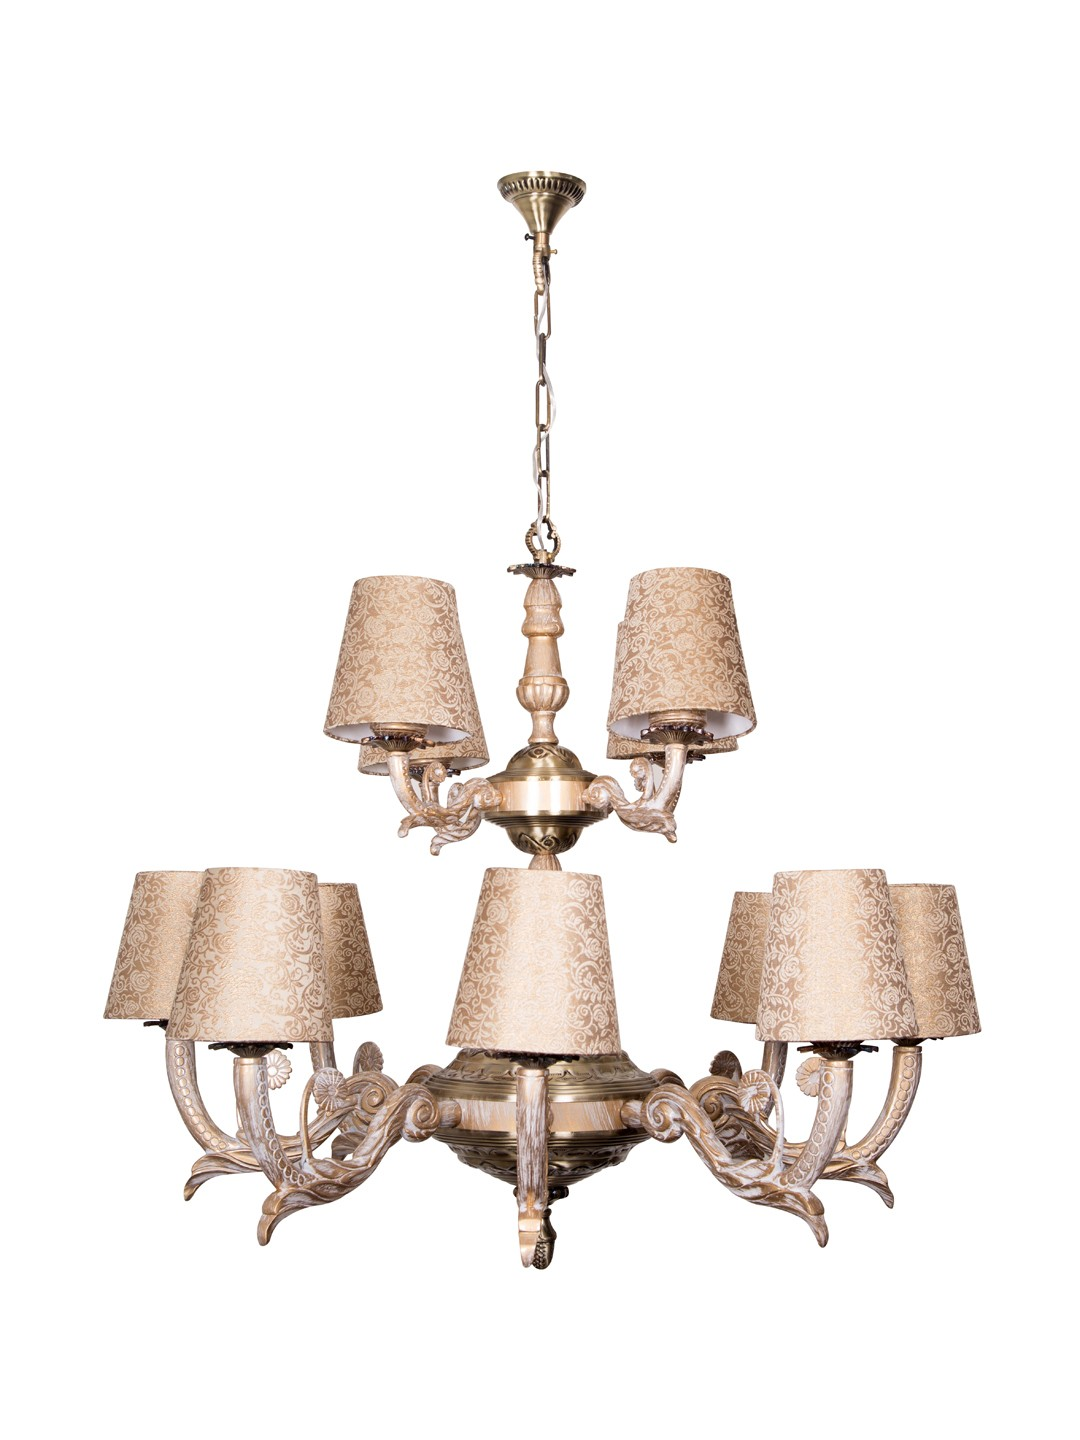 Golden White 12 Light 2 Tier Chandelier in Brocade Shades